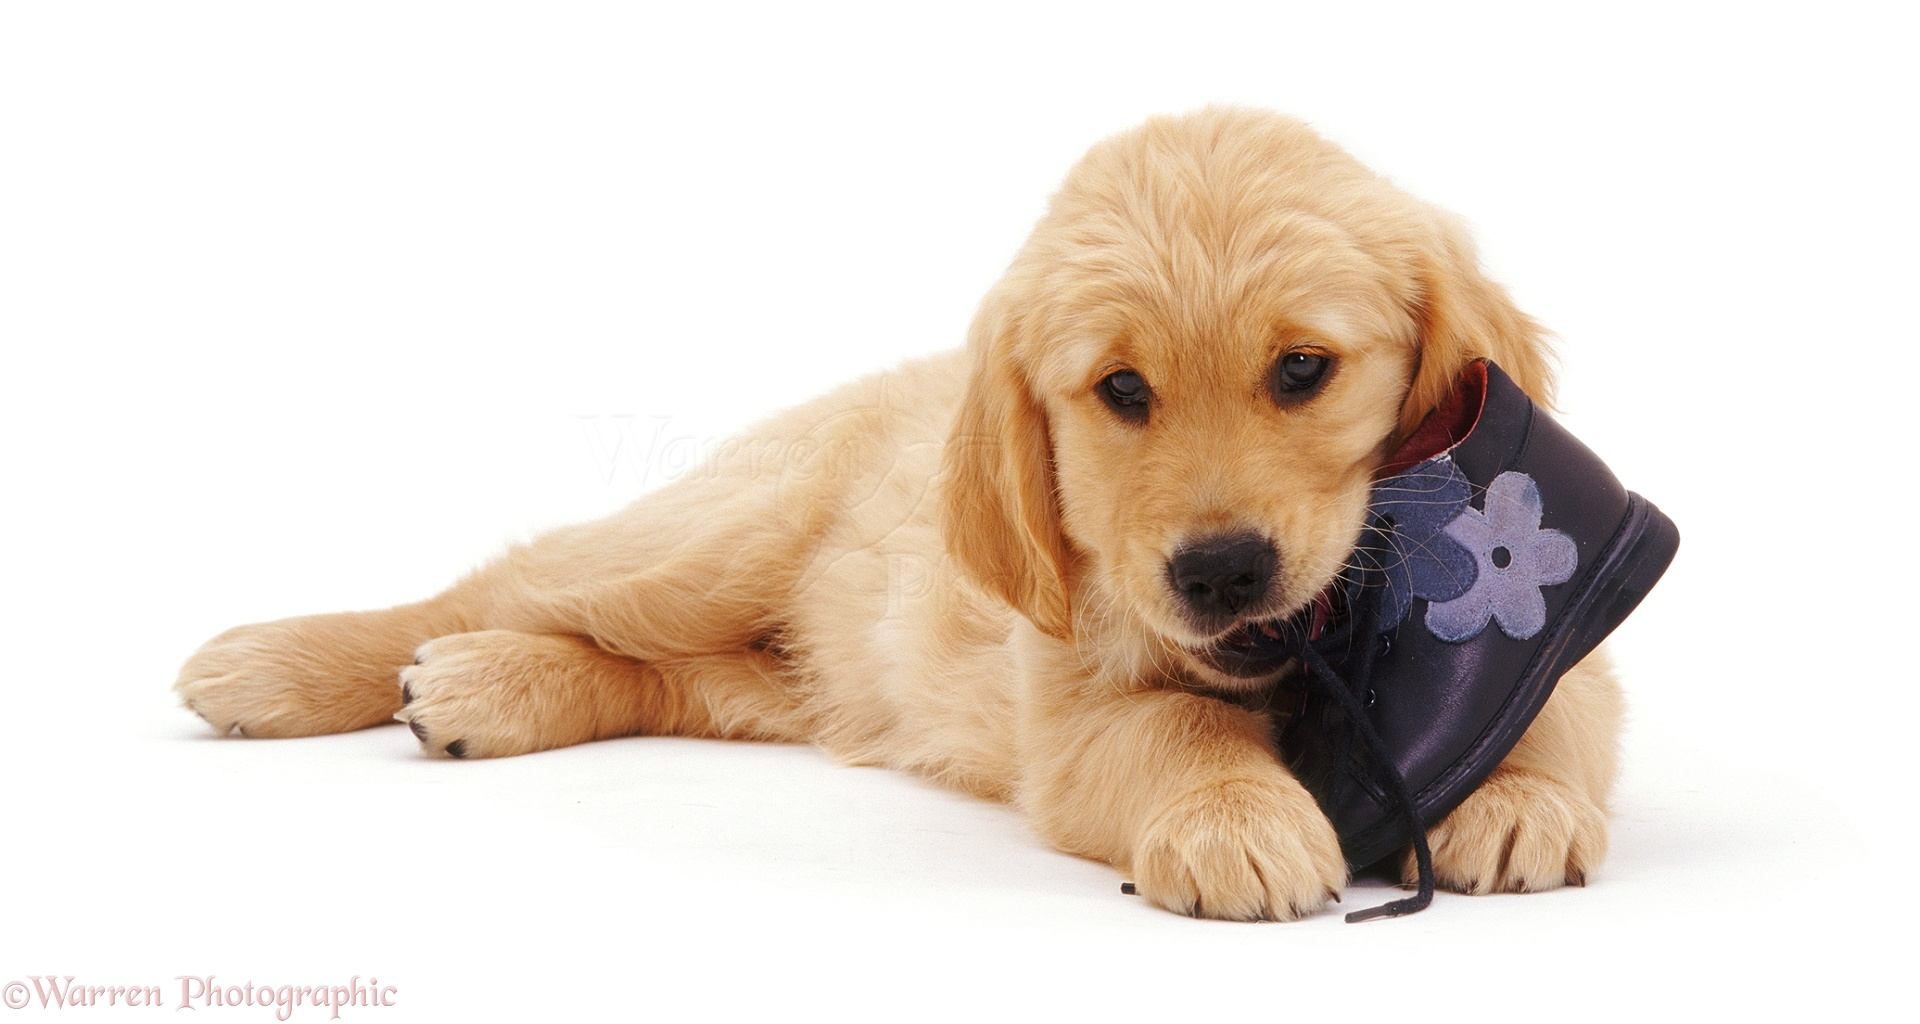 Dog Golden Retriever Puppy Photo Wp07411